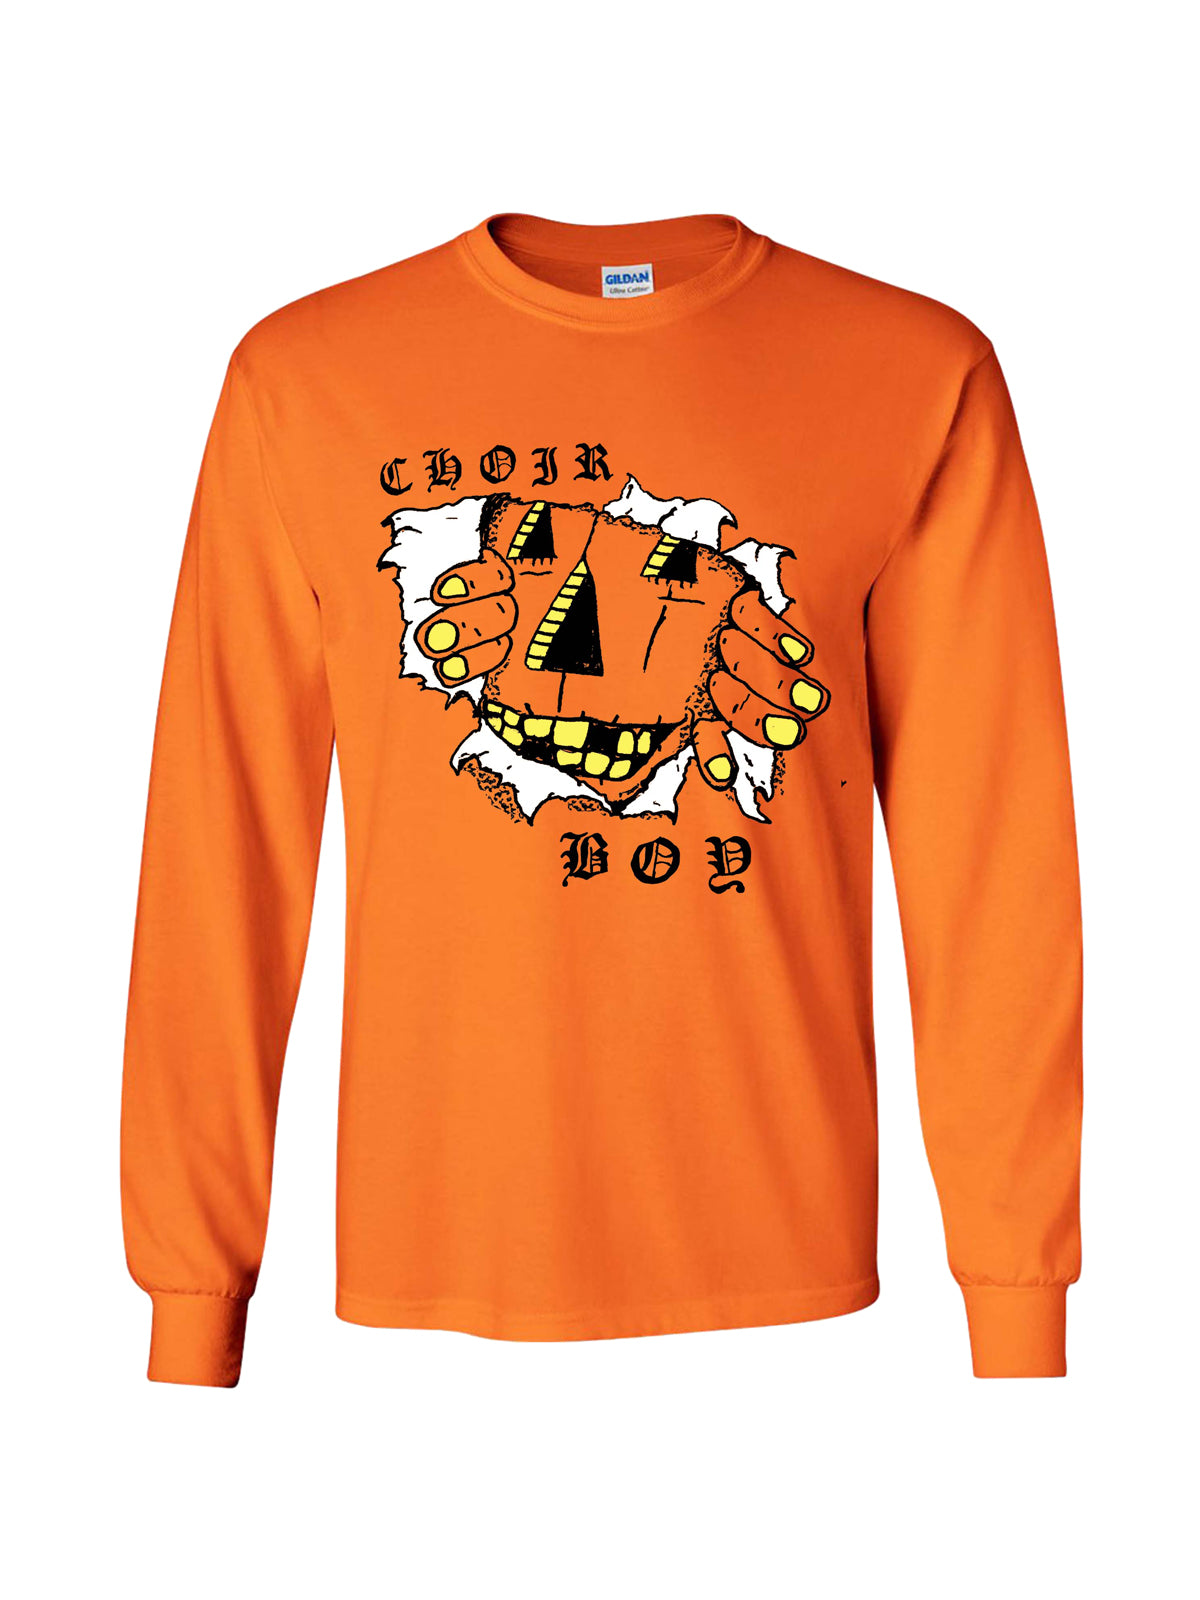 Choir Boy - Halloween 2018 Longsleeve - Merch Limited